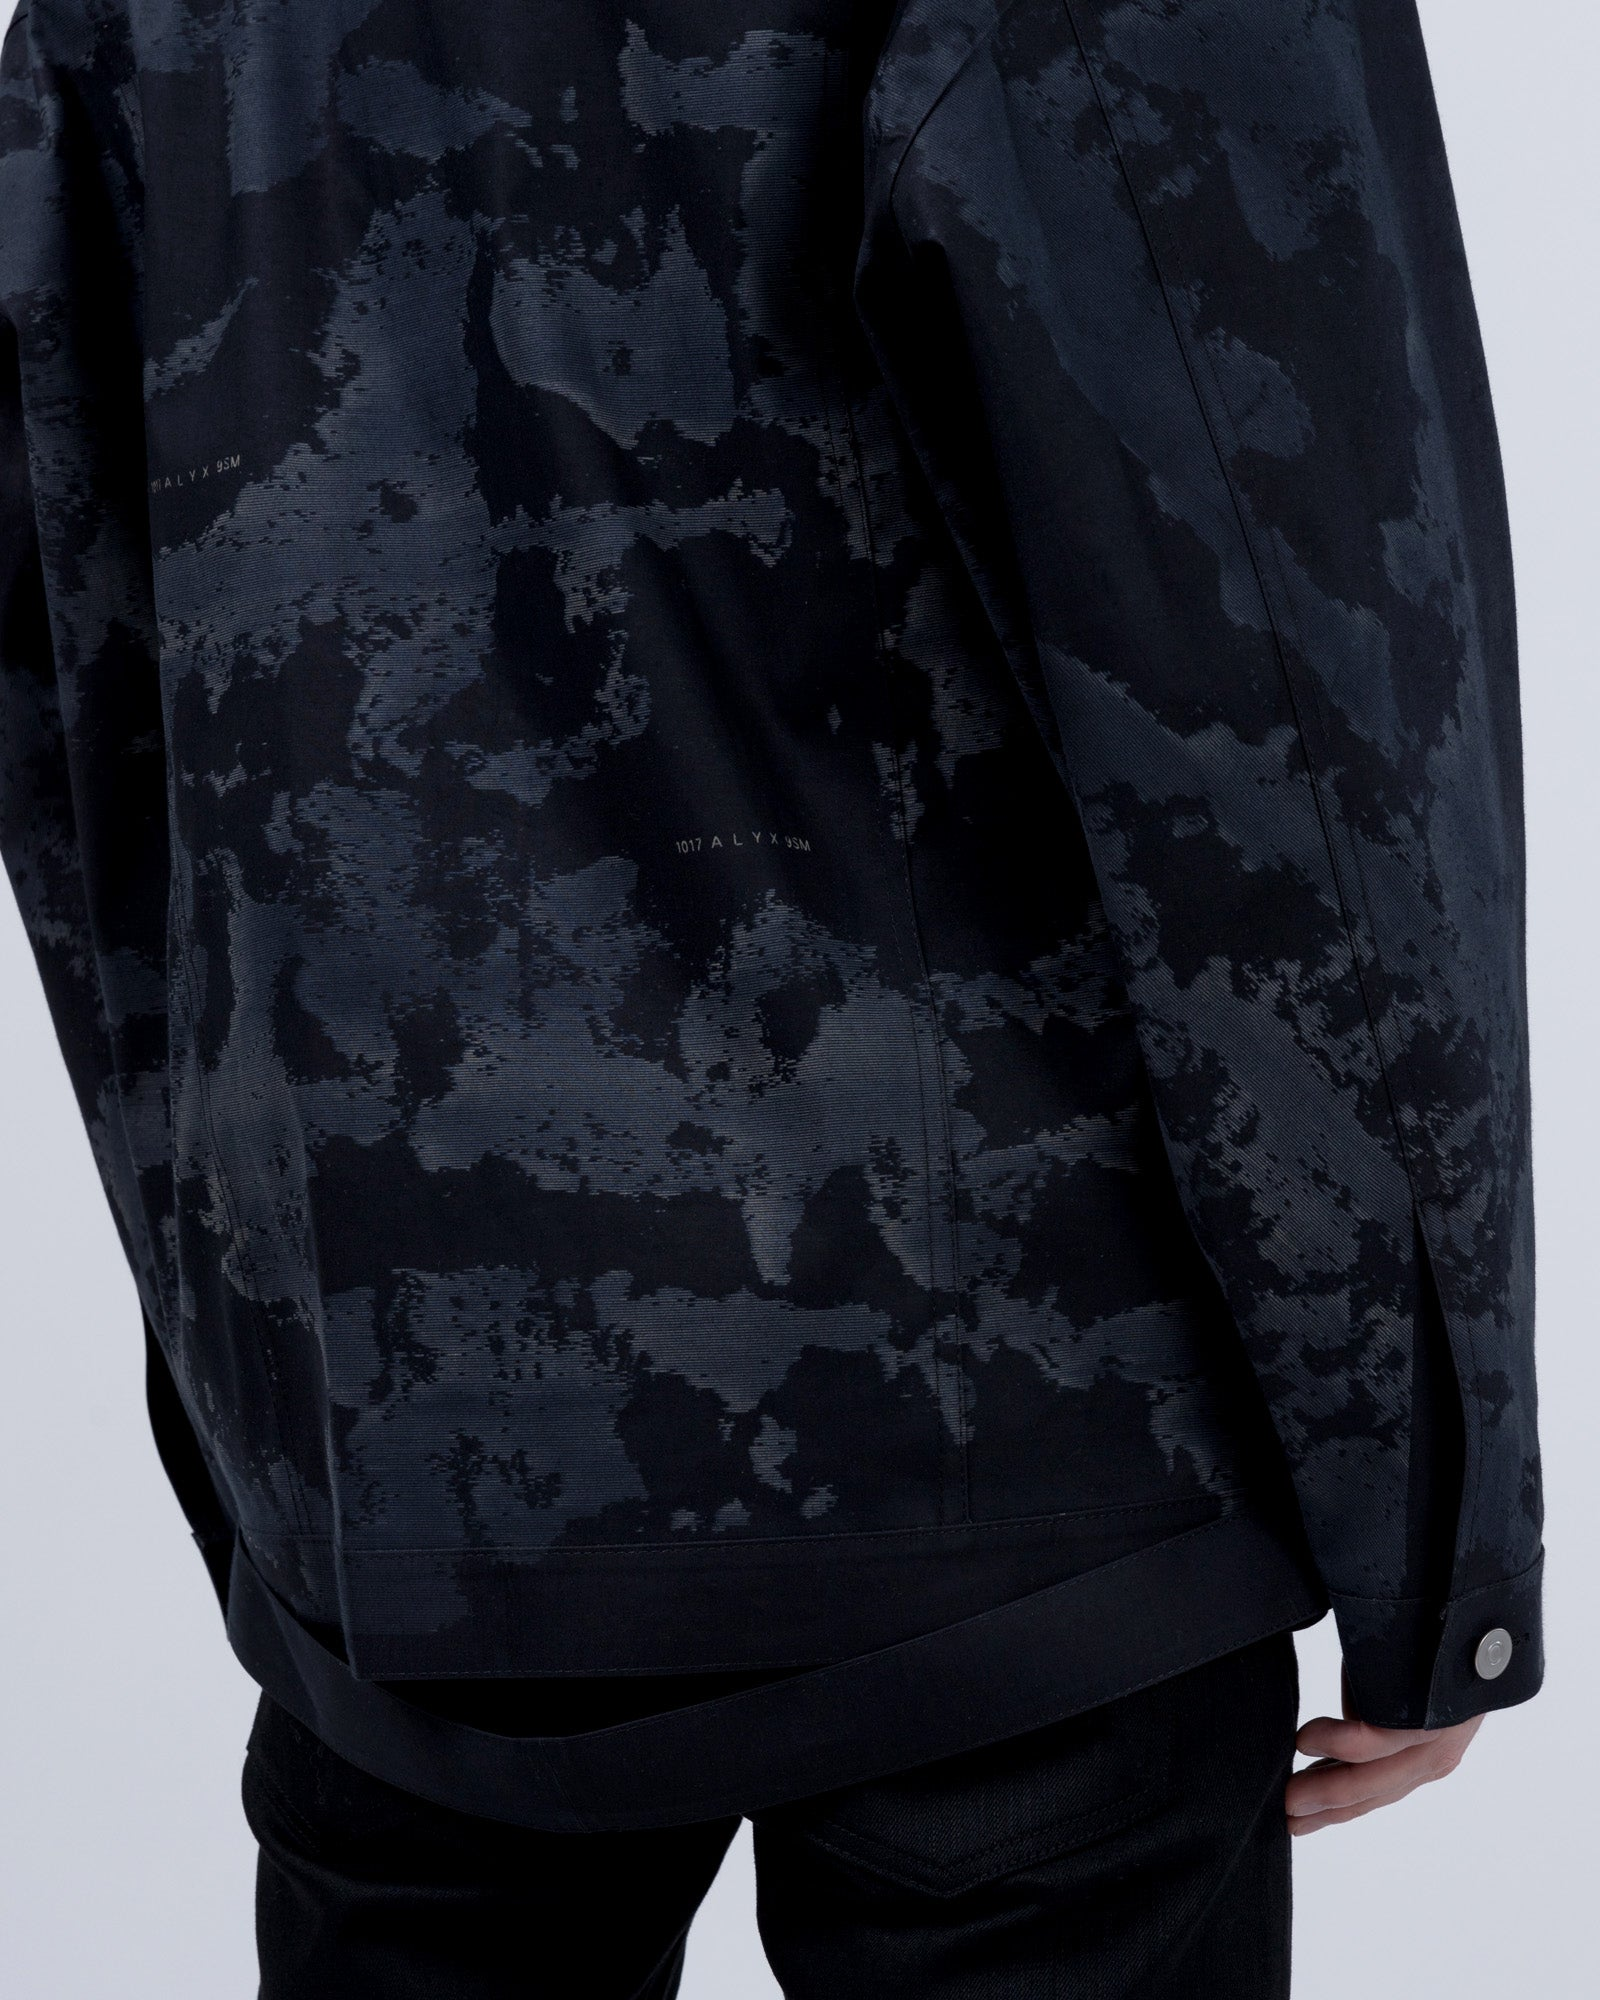 Mackintosh Oversized Denim Jacket in Black | 1017 Alyx 9SM